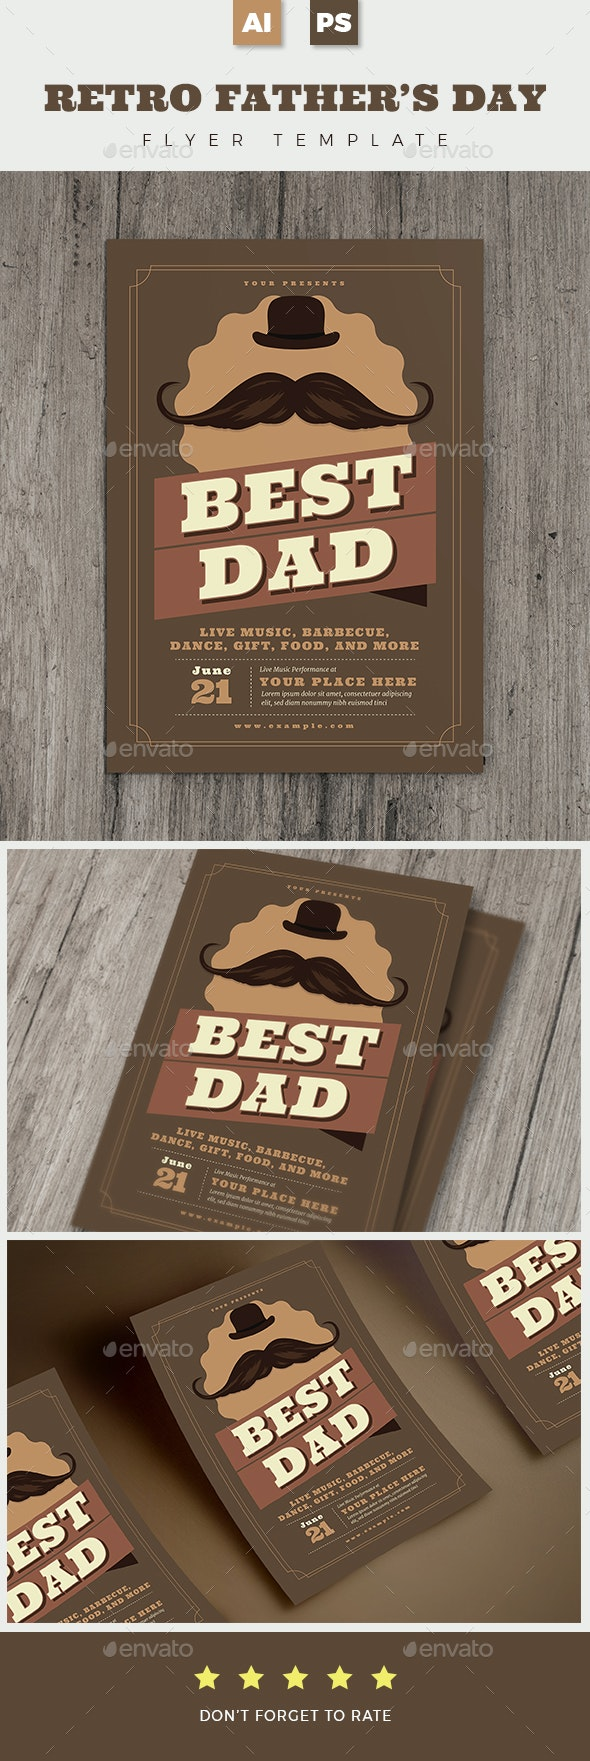 Retro Father's Day Flyer - Holidays Events